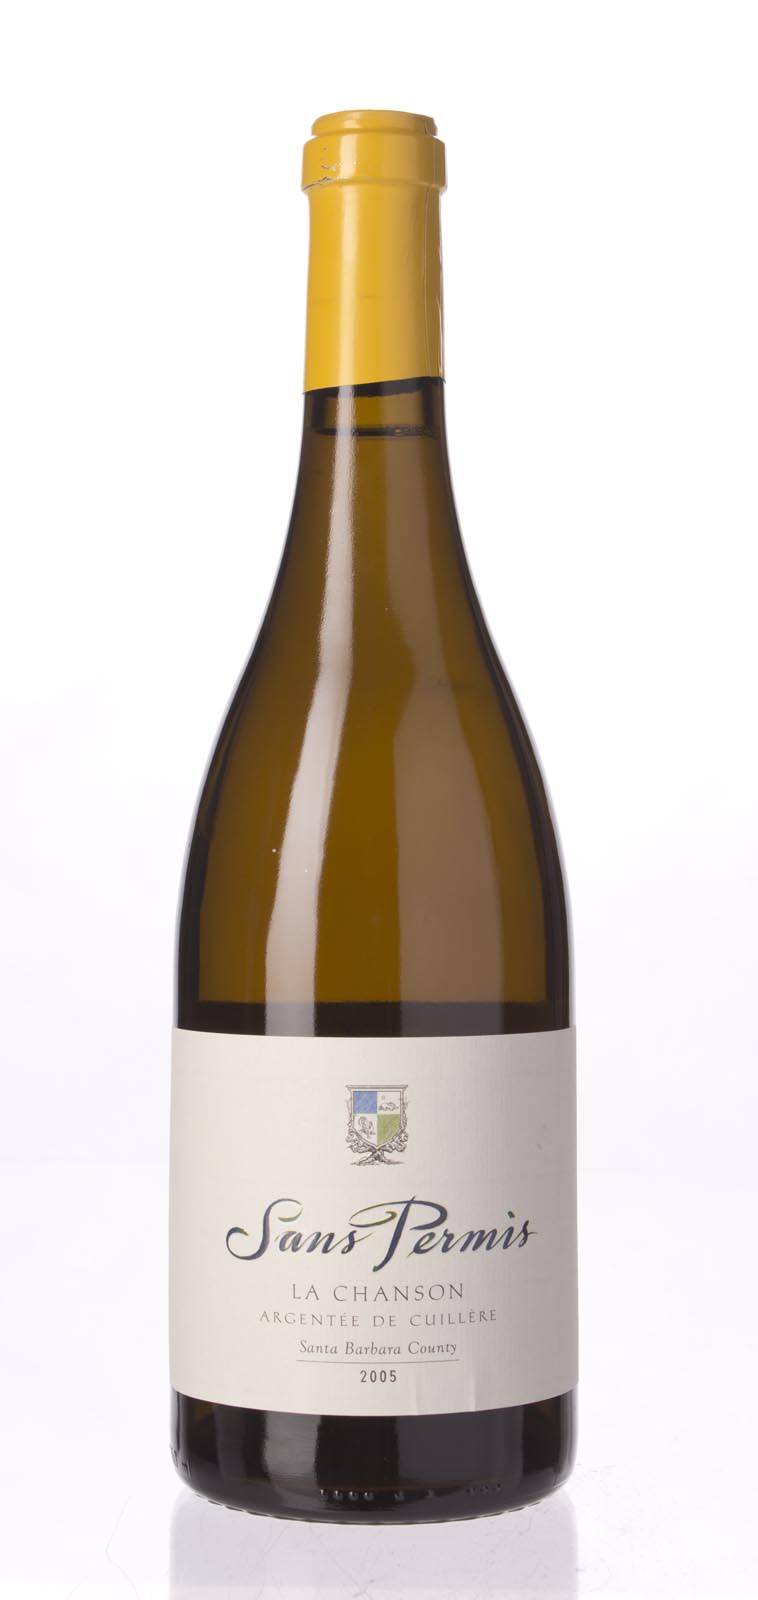 Sans Permis Chardonnay la Chanson Argentee de Cuillere 2005,  () from The BPW - Merchants of rare and fine wines.